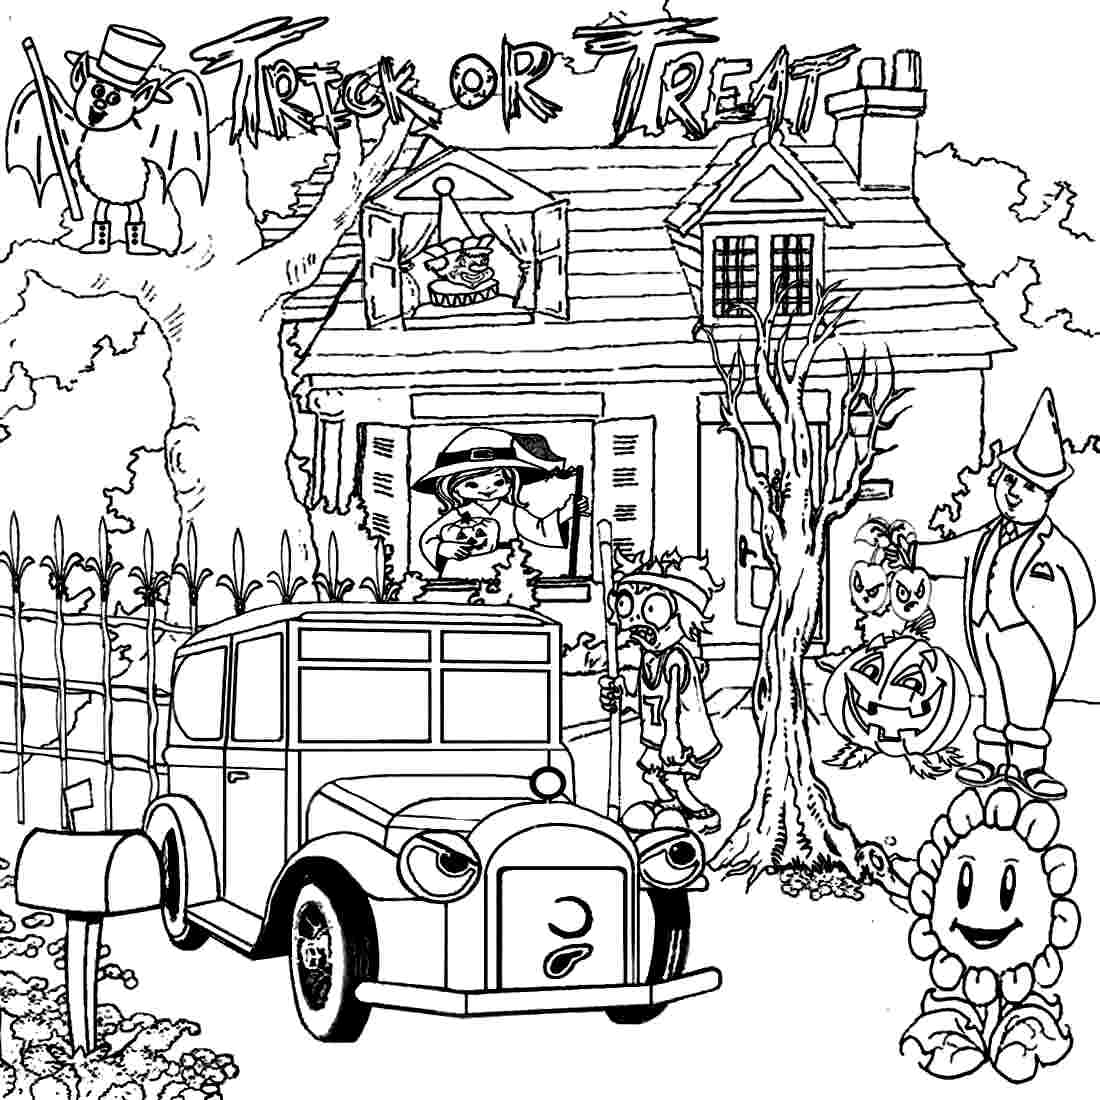 haunted house coloring pages free printable haunted house coloring pages for kids coloring pages haunted house